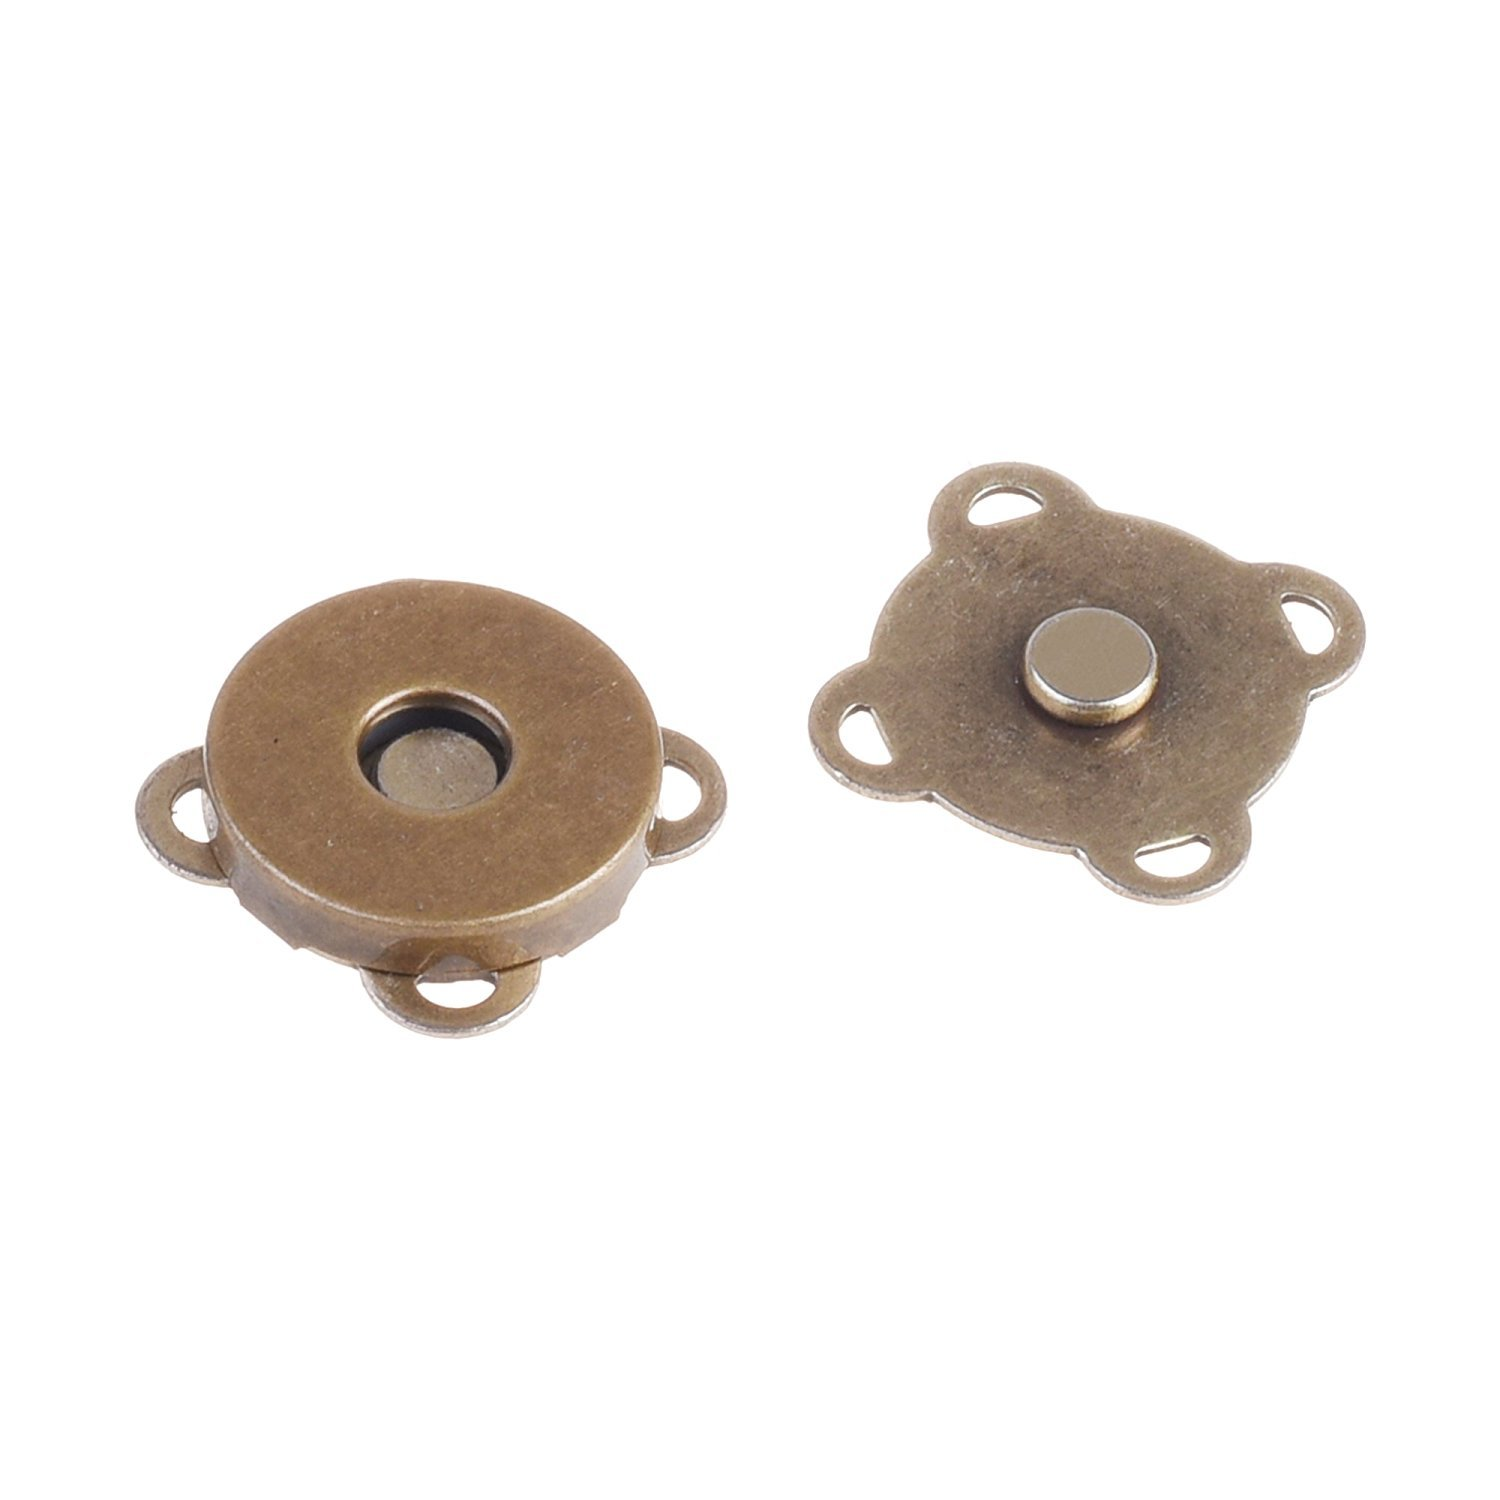 Bronze BCP 10 Sets 18mm Sew in Magnetic Bag Clasps Plum Blossom Bag Button Great for Sewing Craft Clothing Bag Clasps Snaps